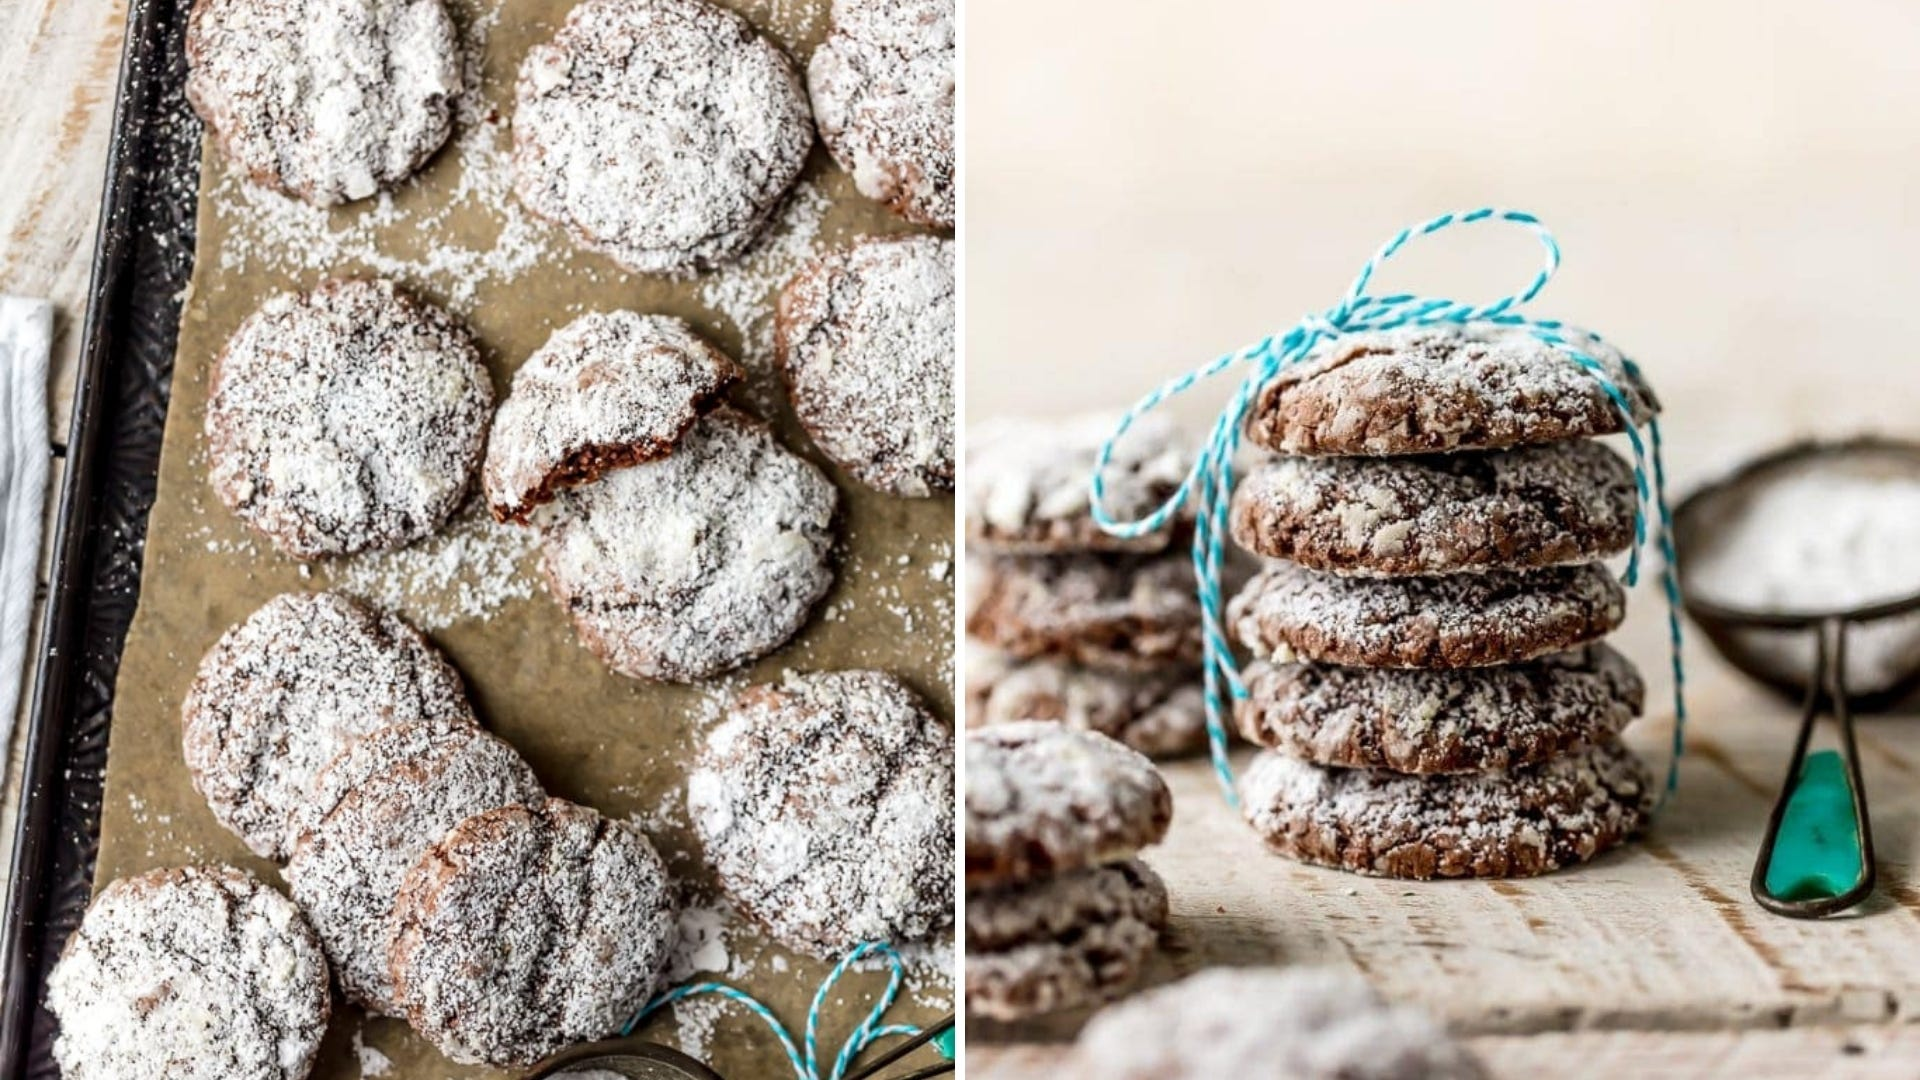 Chocolate gooey cake cookies on a baking sheet and a stack of them tied with string.